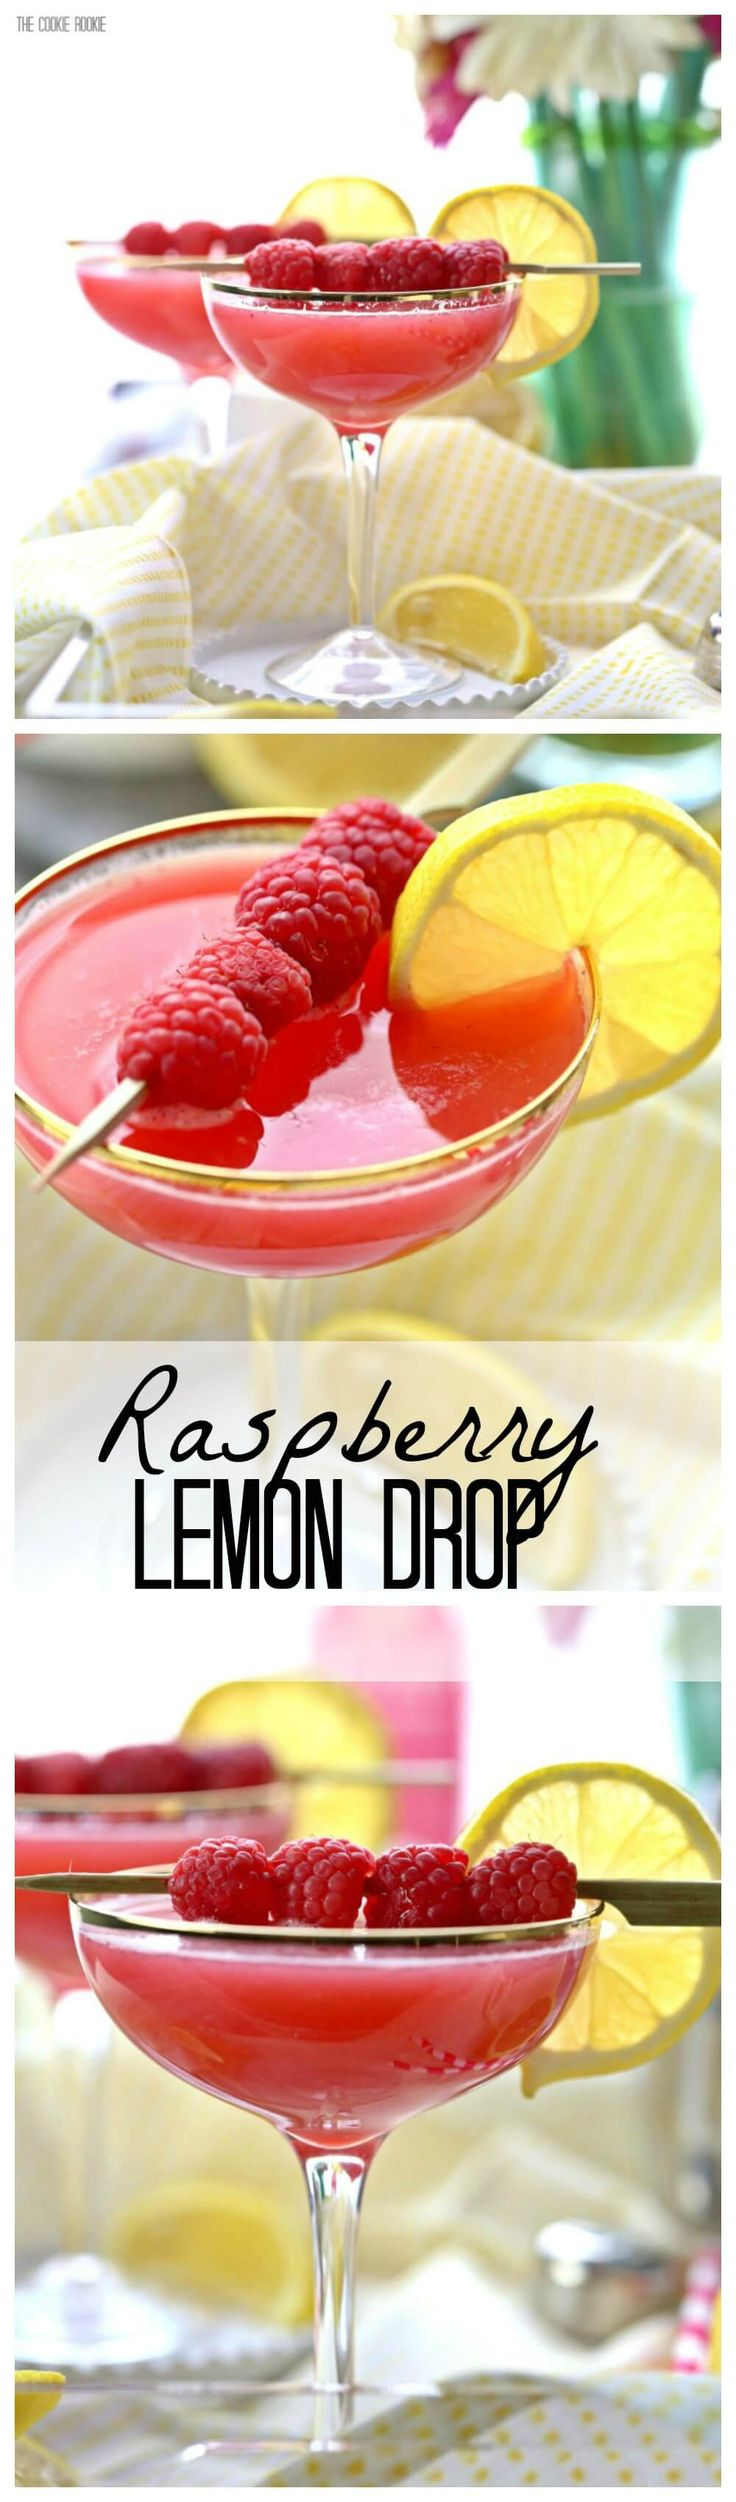 Raspberry and lemon together is delicious! must try this one! xx